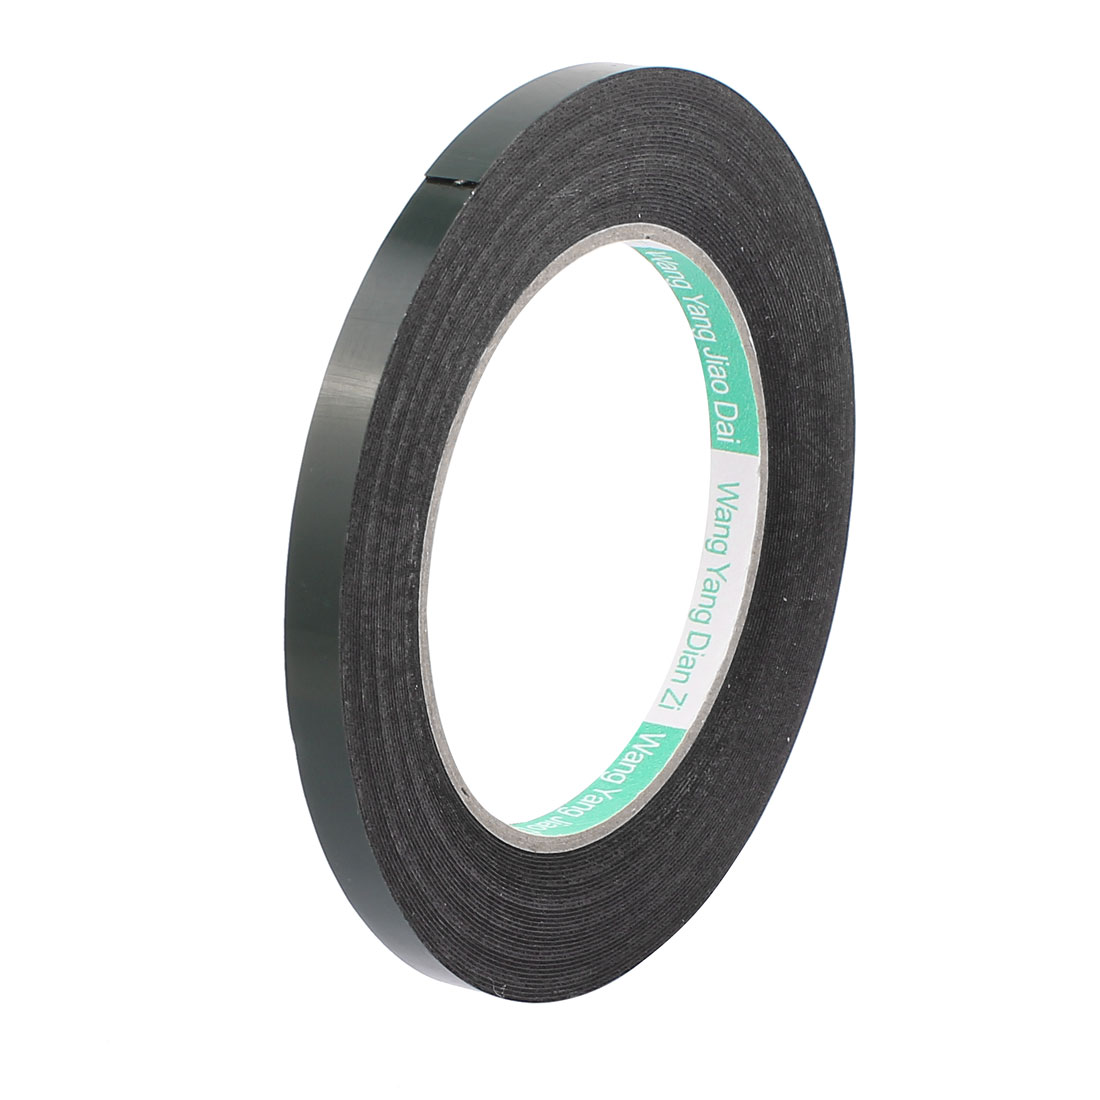 0.8CM Width 10M Length 0.5MM Thick Dual Sided Sealing Shockproof Sponge Tape